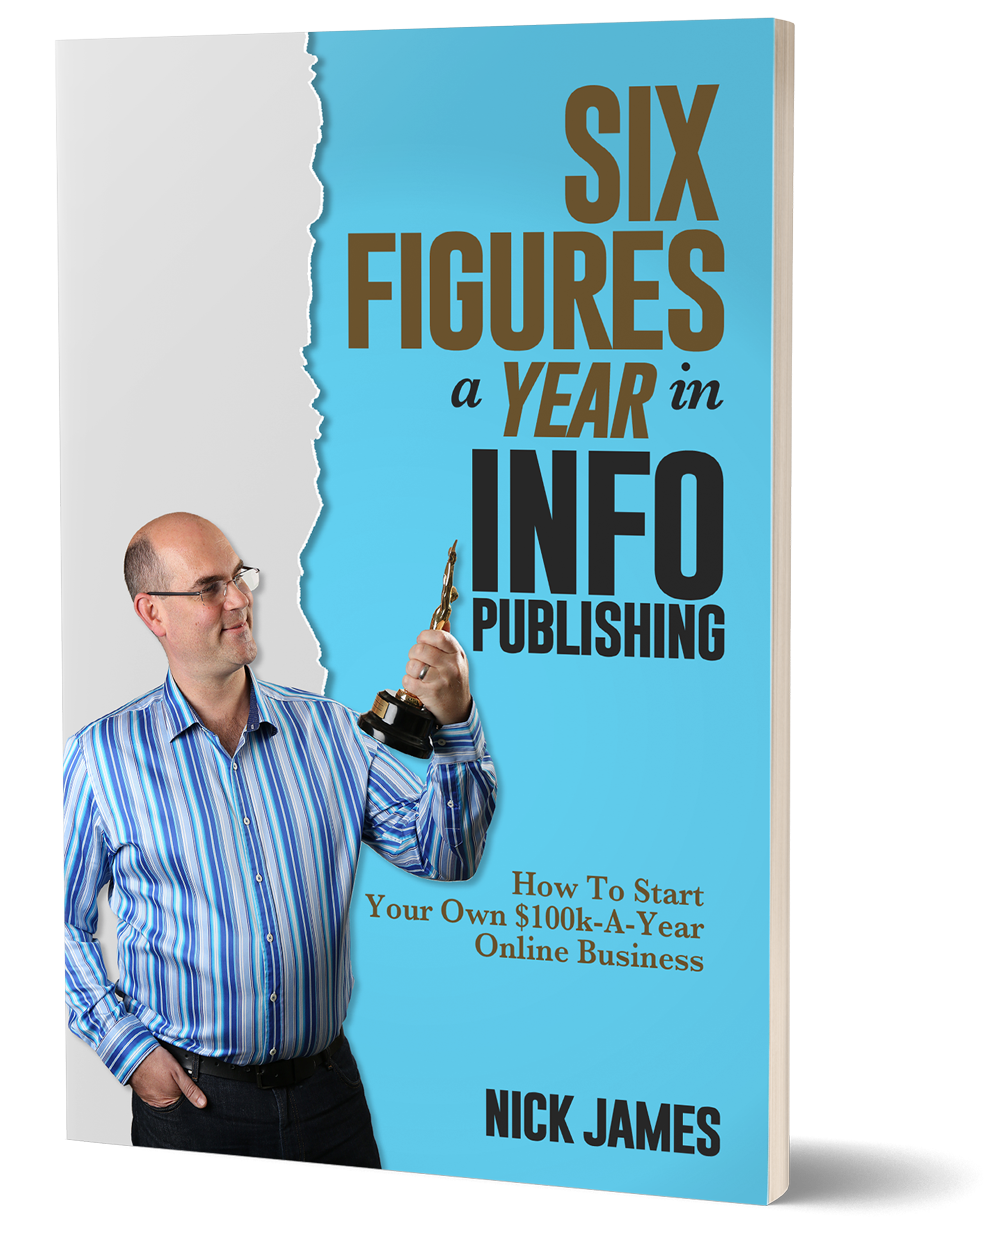 Six Figures A Year In Info Publishing From Nick James Bonus Review Url